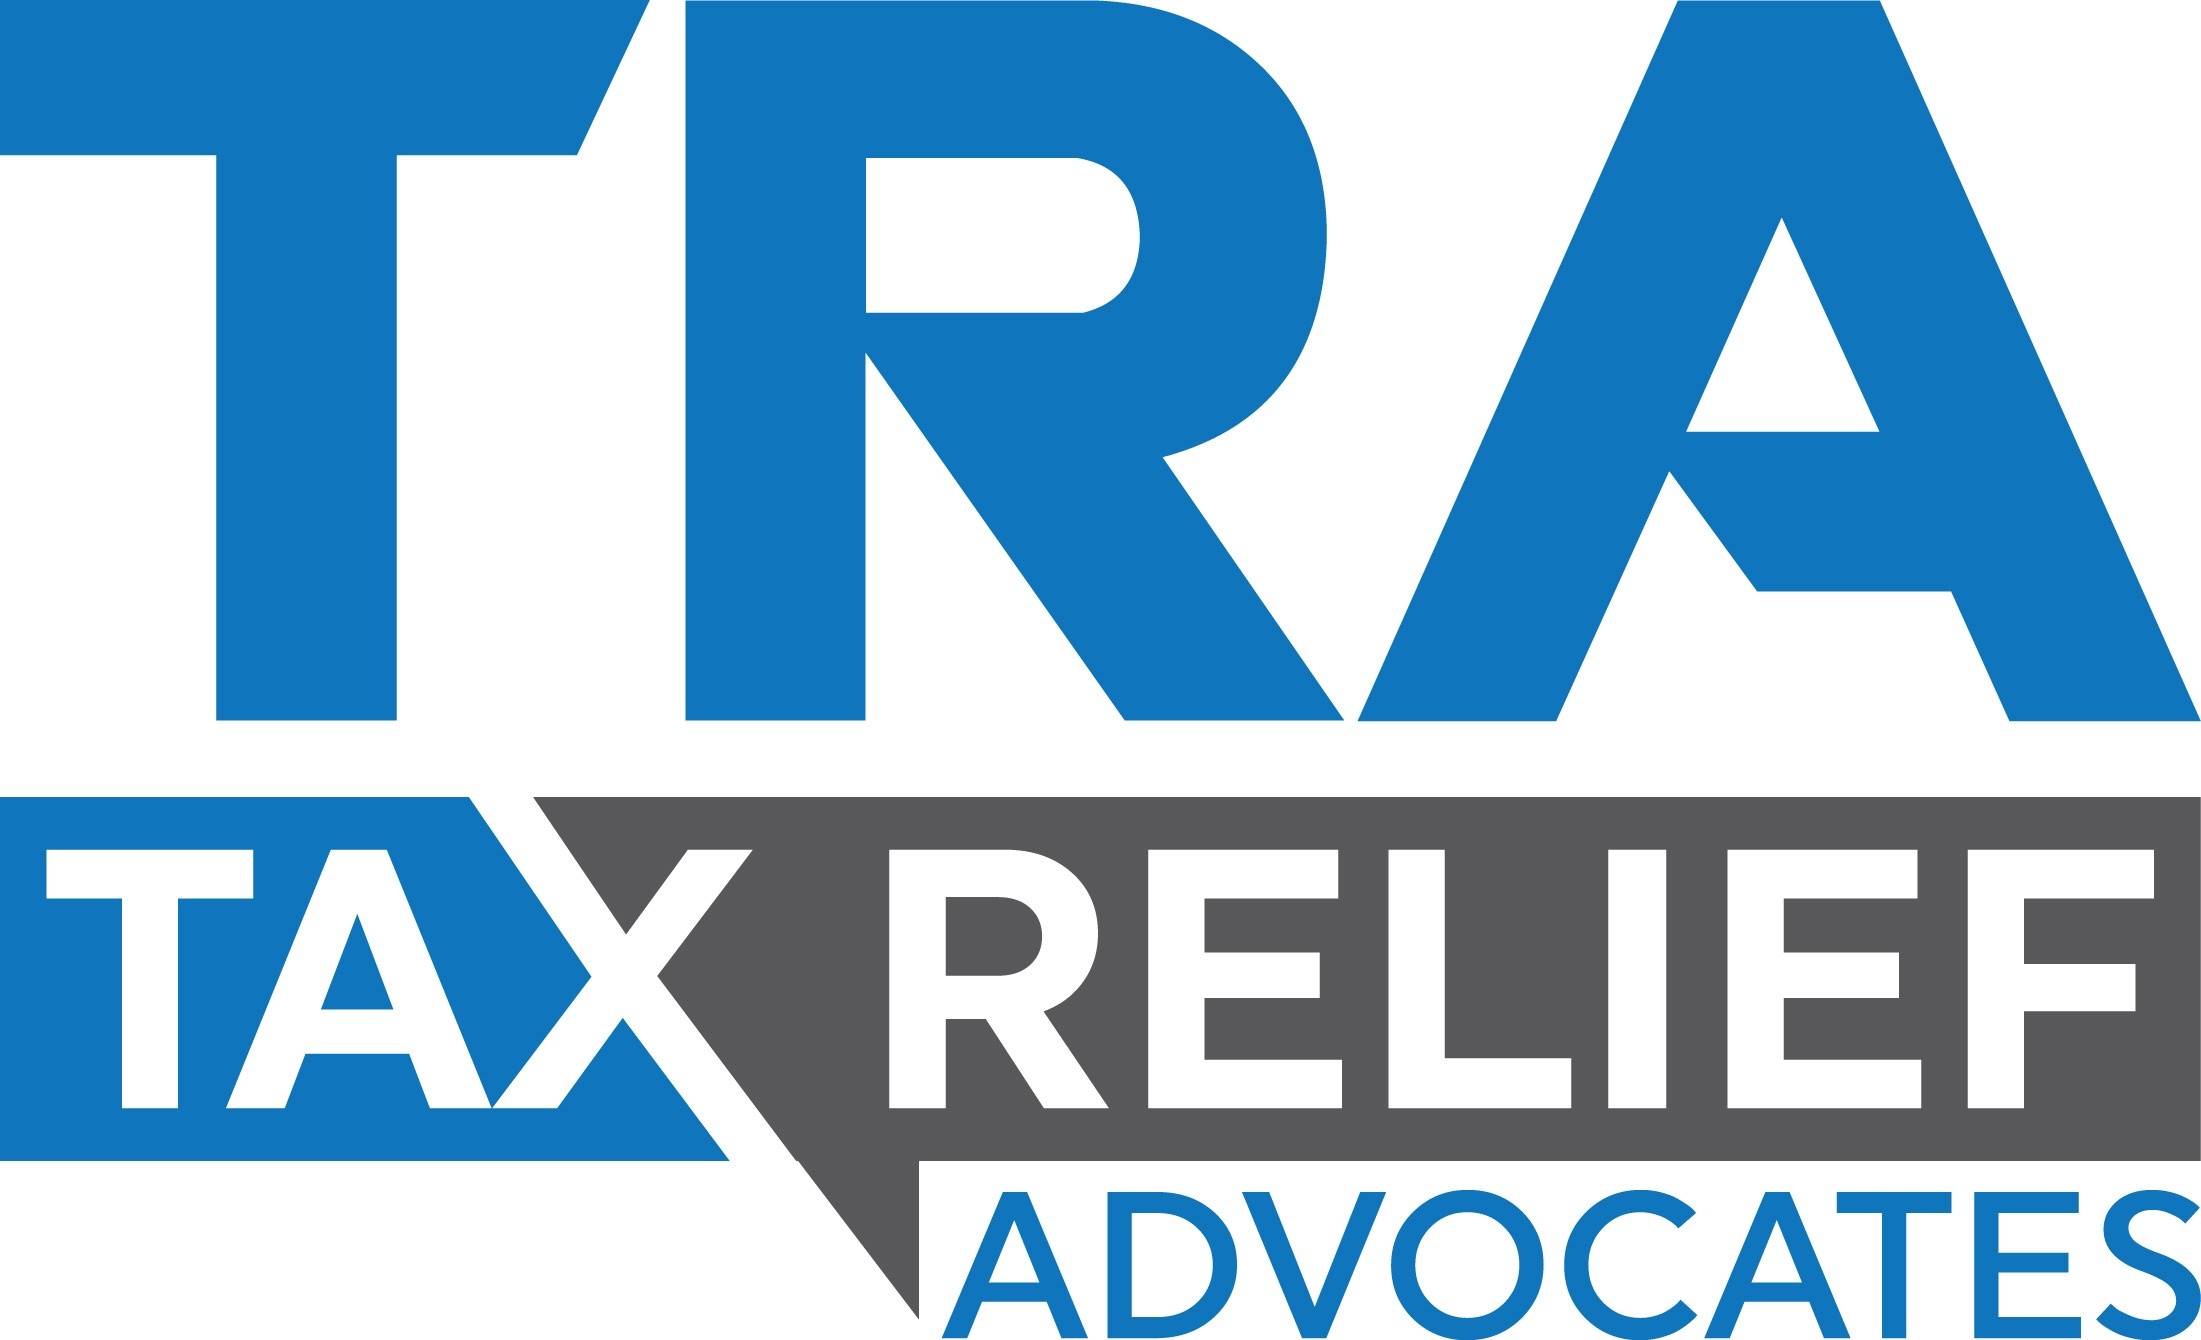 Income Tax Relief Las Vegas NV